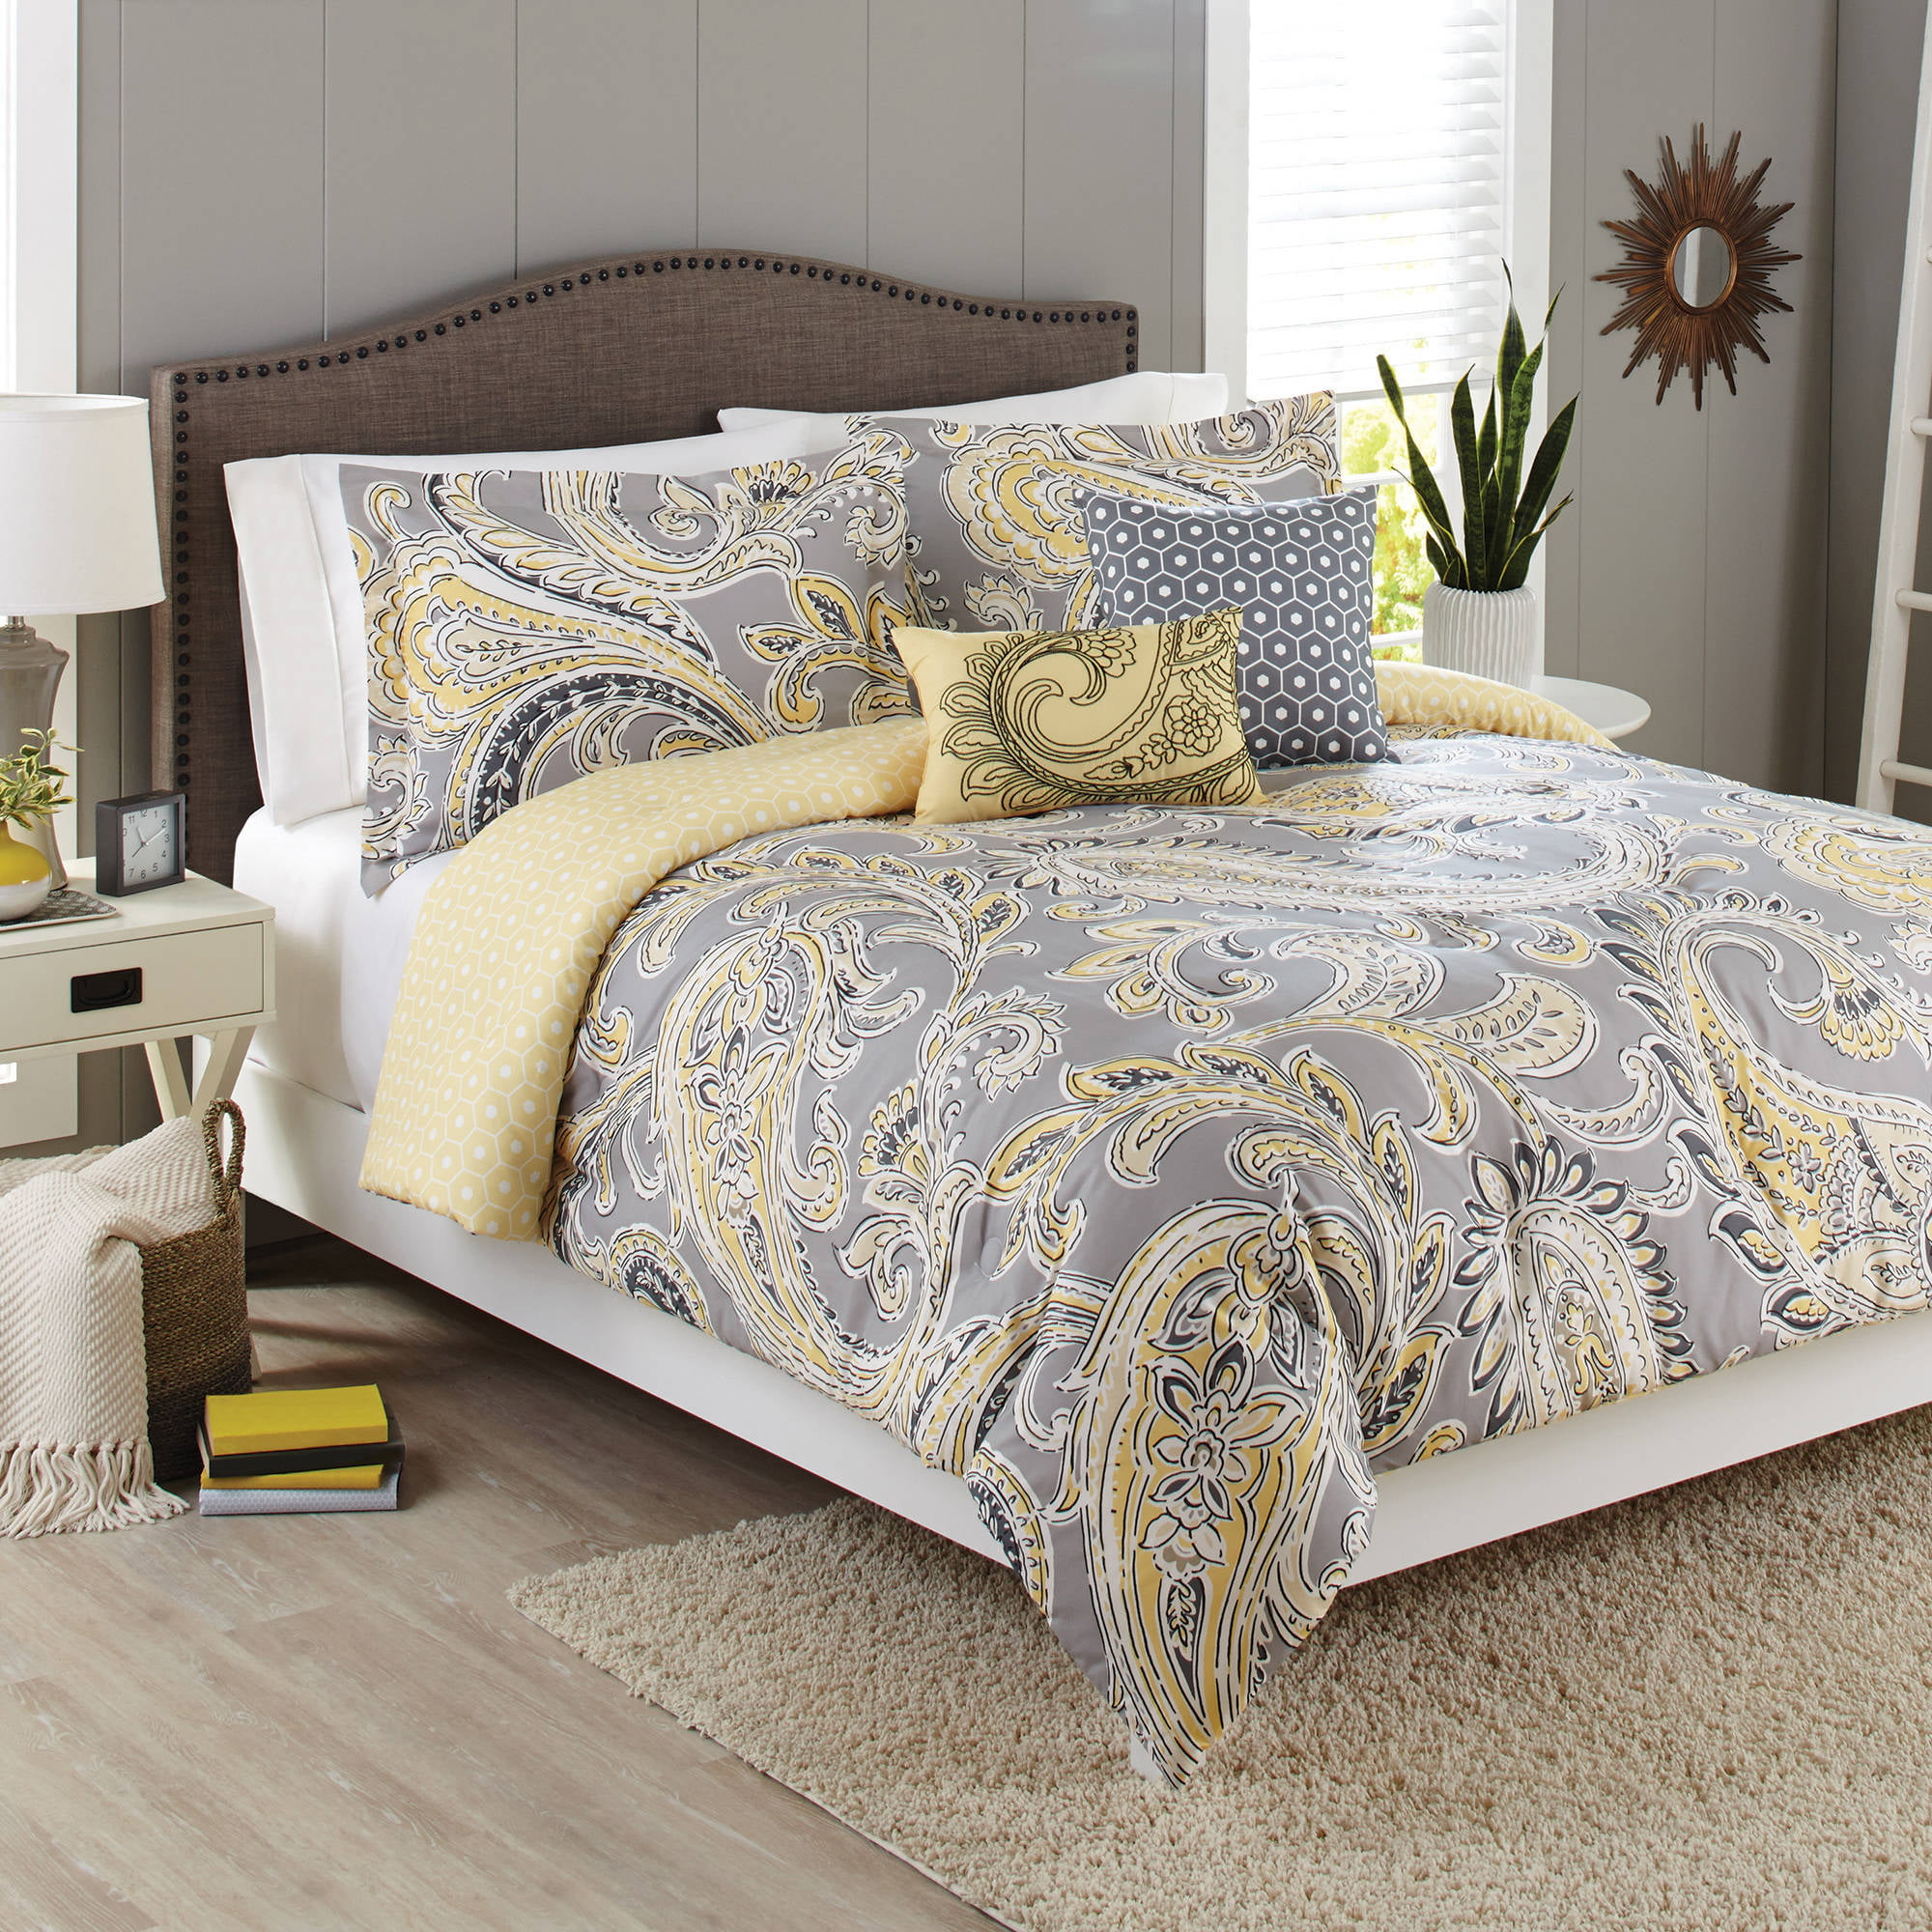 com hampton comforter links king jill twin navy yellow rosenwald product set westpointhome